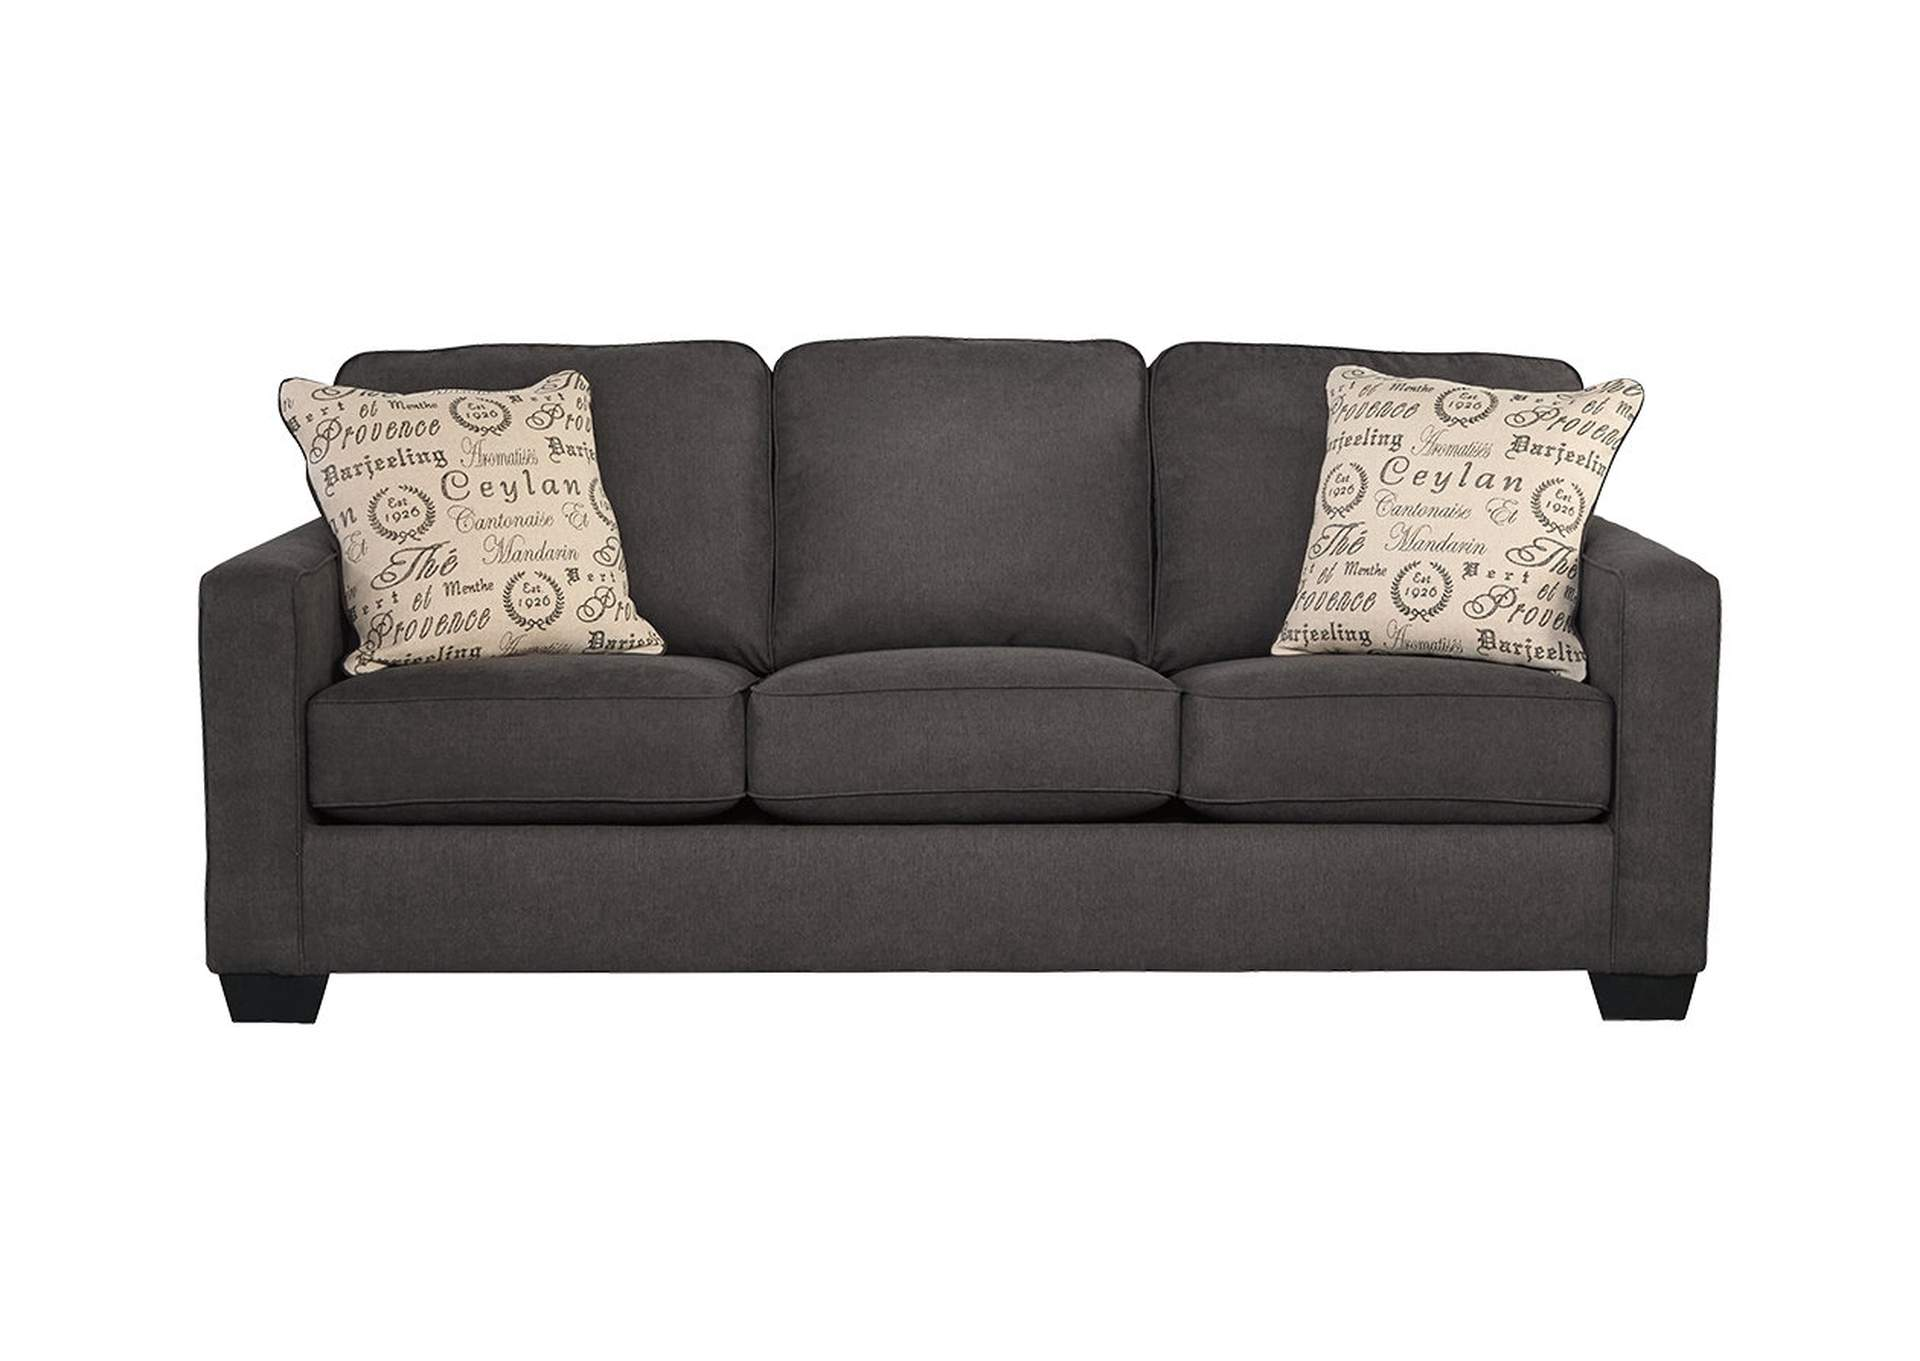 Alenya Charcoal Queen Sofa Sleeper,Signature Design By Ashley